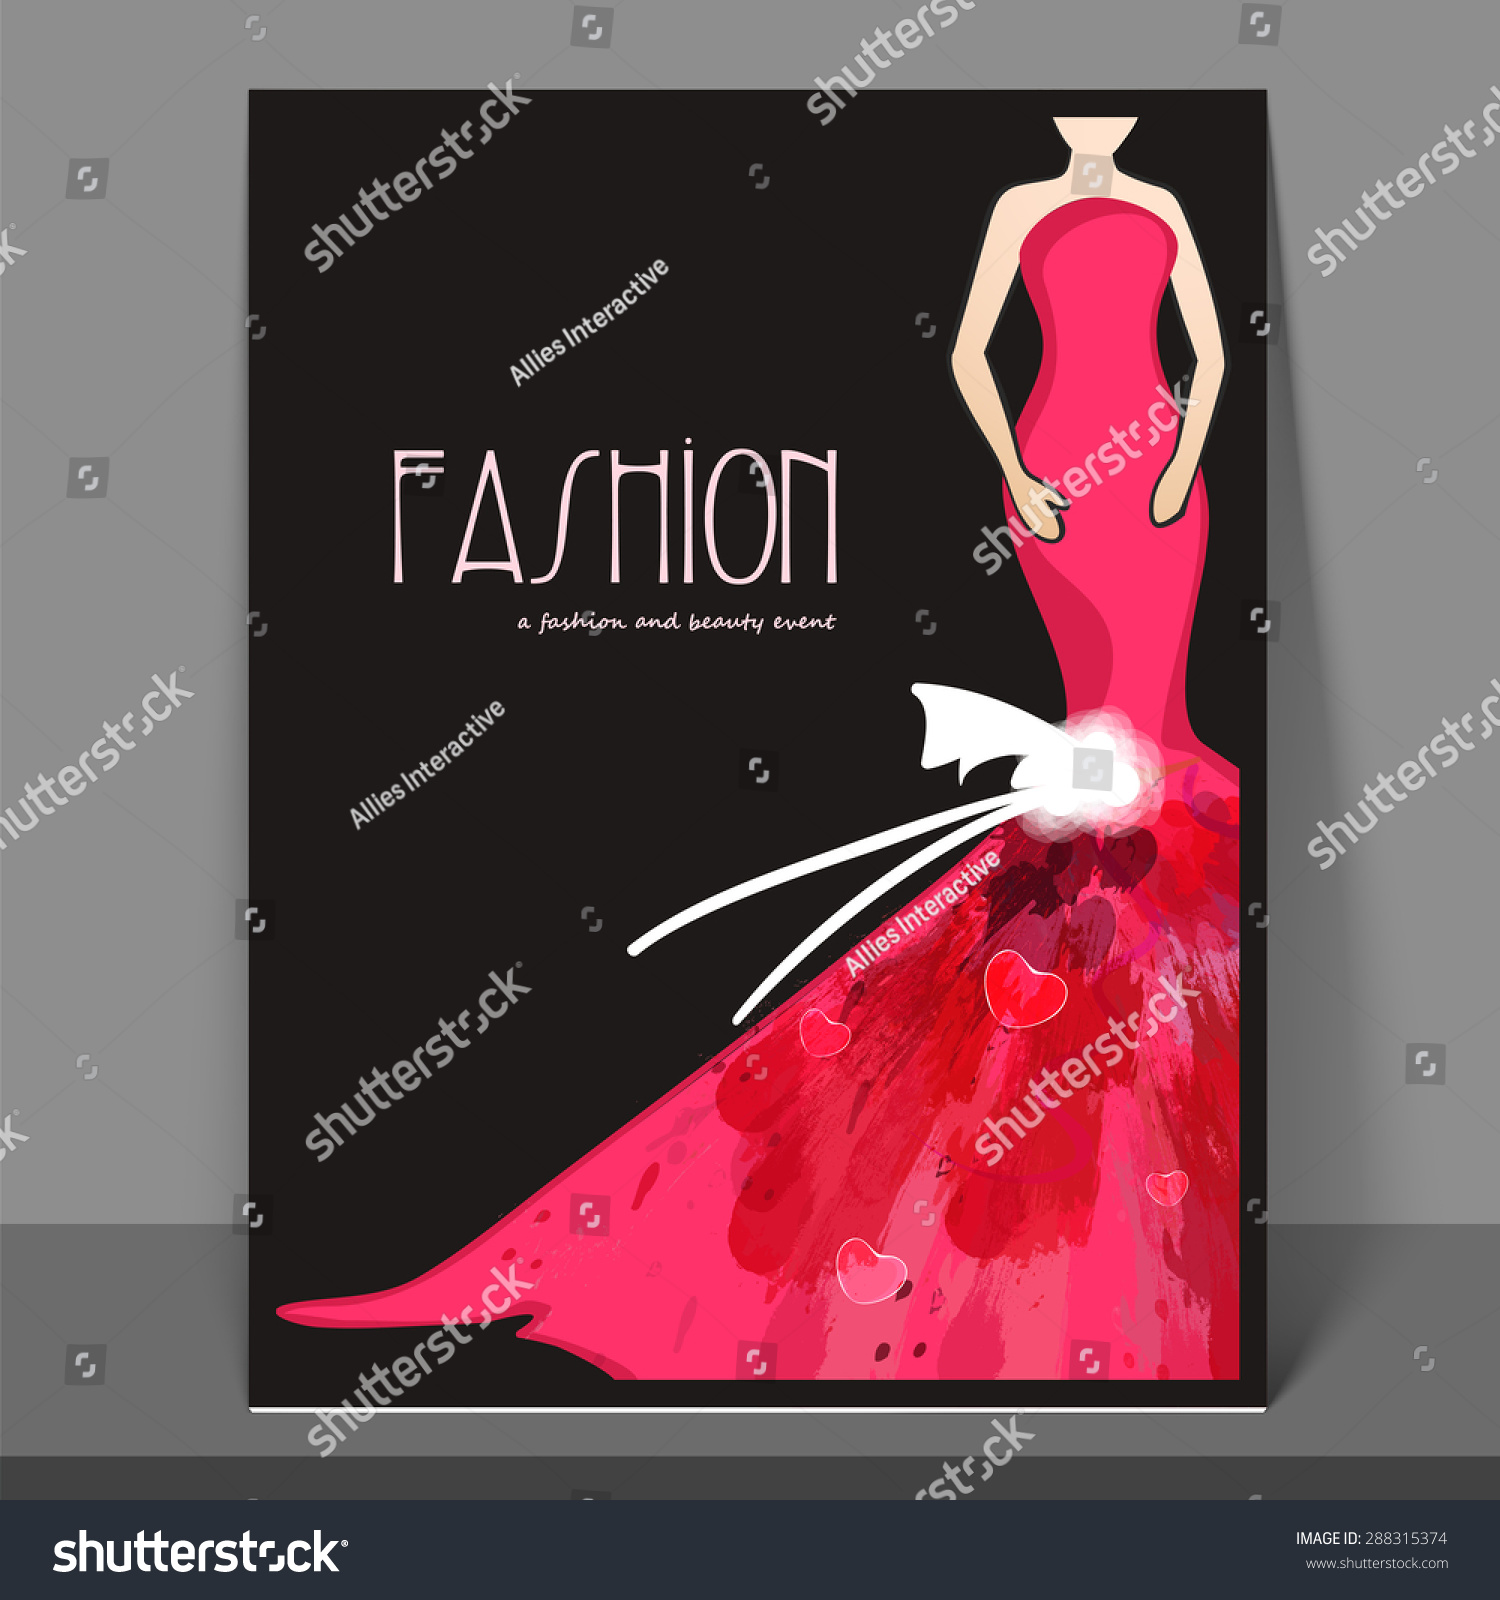 fashion flyers templates for free - stylish fashion flyer banner template design stock vector